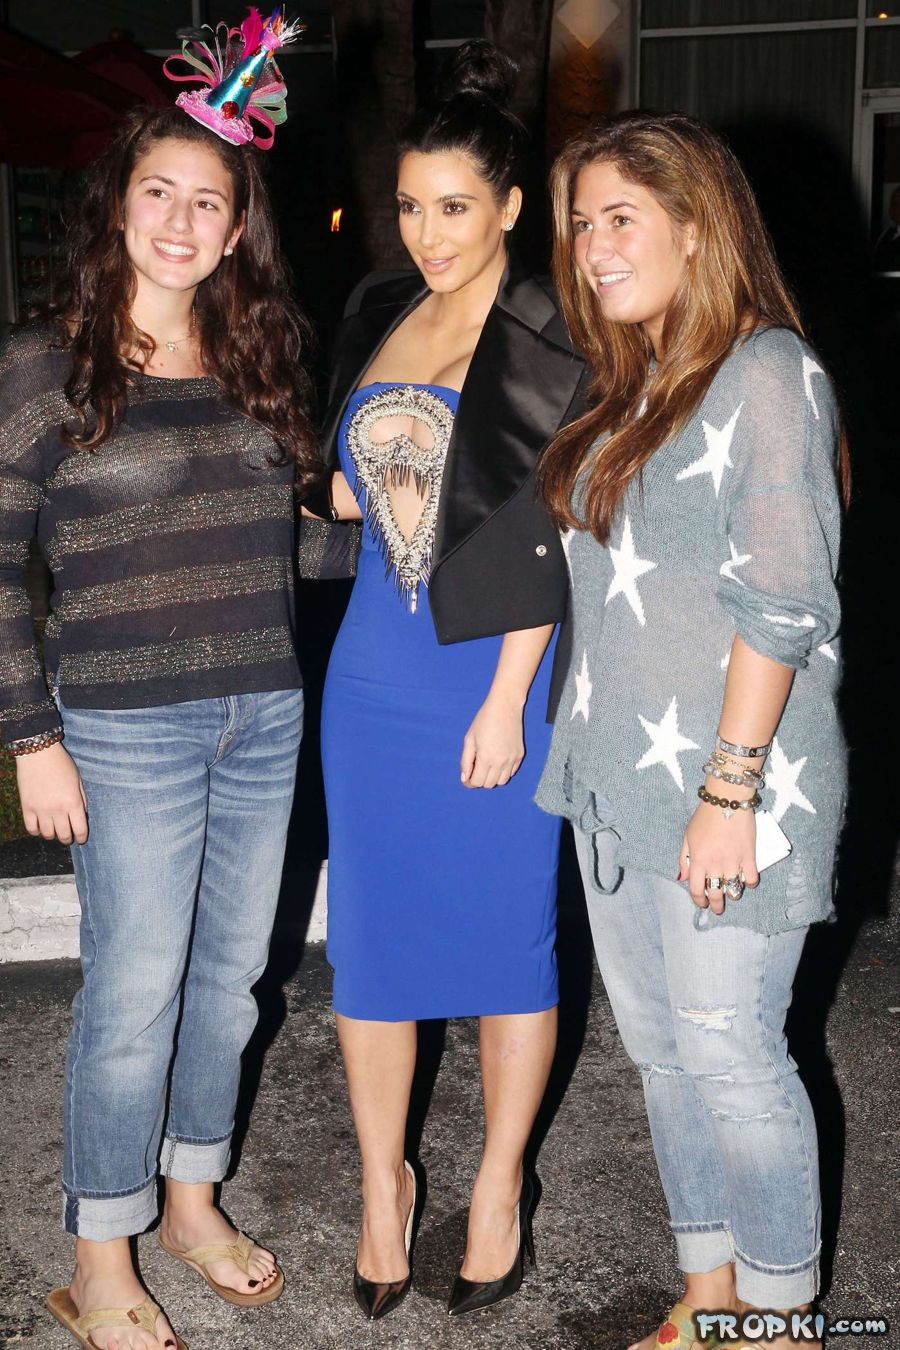 Pregnant Kim Kardashian steps out for dinner AdqW0x4m